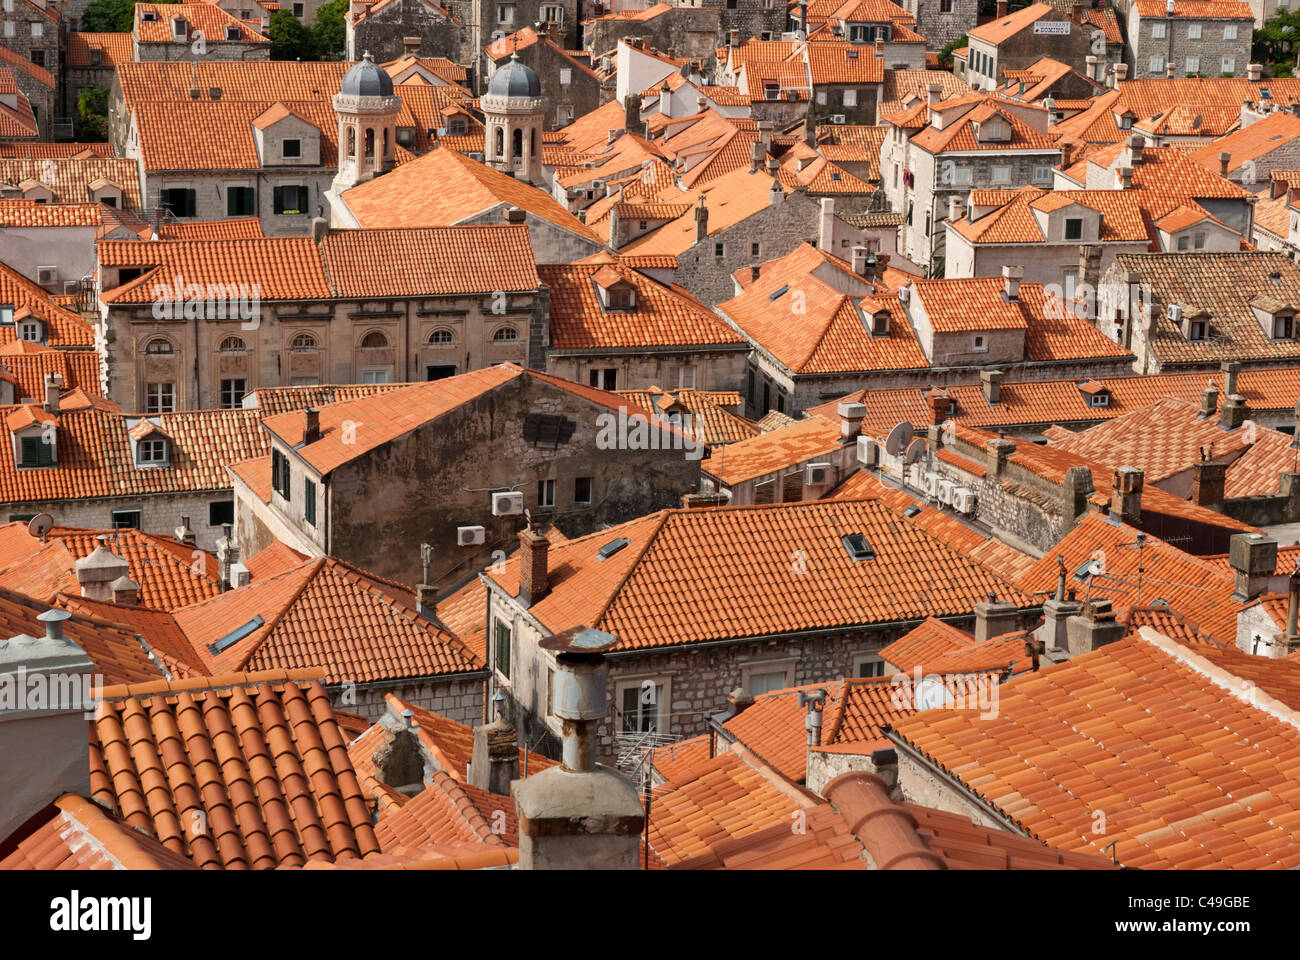 The famous orange roofs of the buildings in Old Town, Dubrovnik, Croatia. Brighter roofs signify new ones after Stock Photo